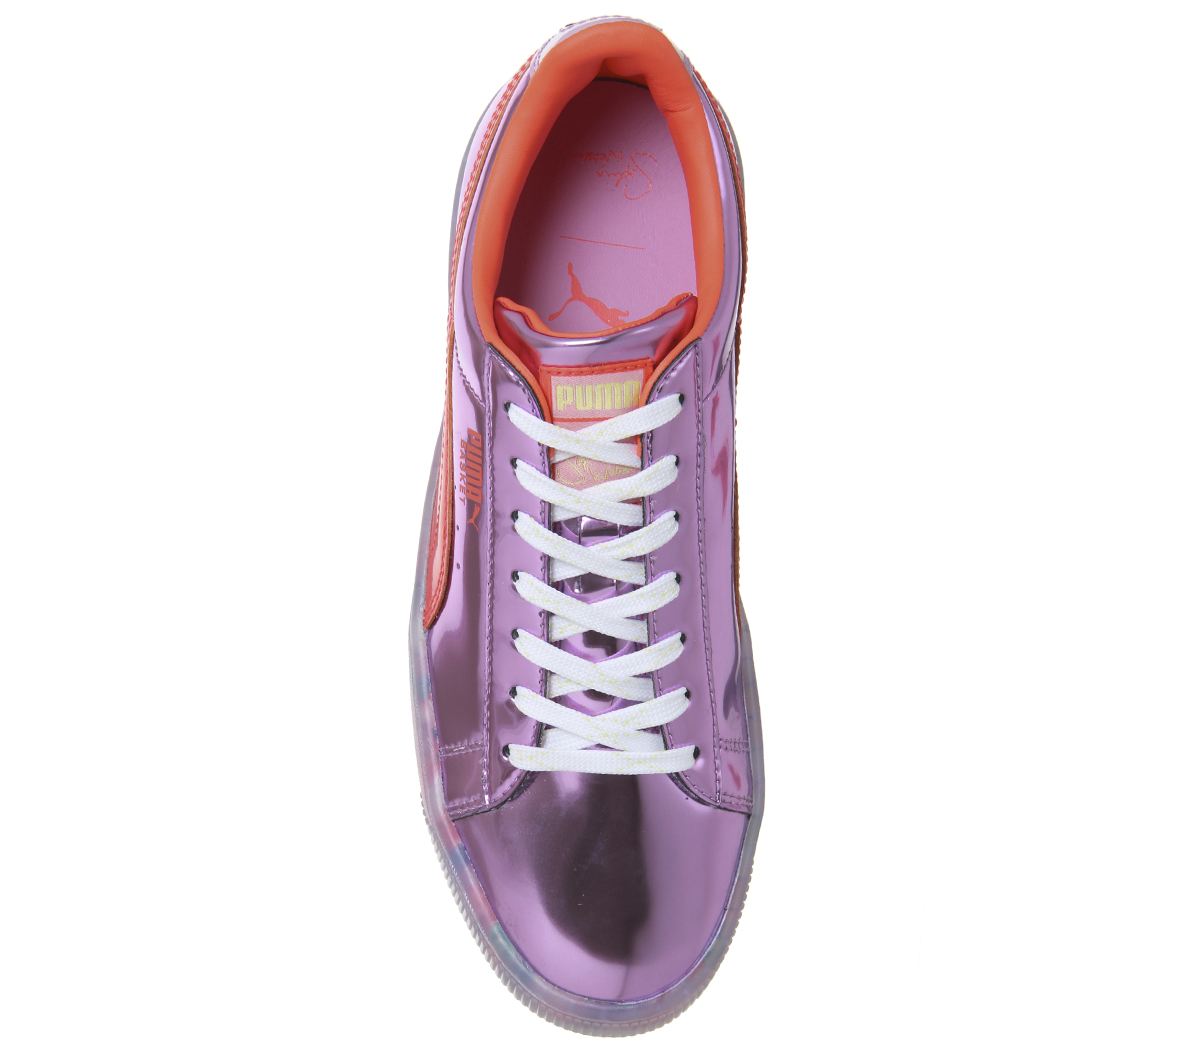 a39864473f5 Womens Puma Basket Candy Princess Trainers Sw Metallic Pink Firey ...